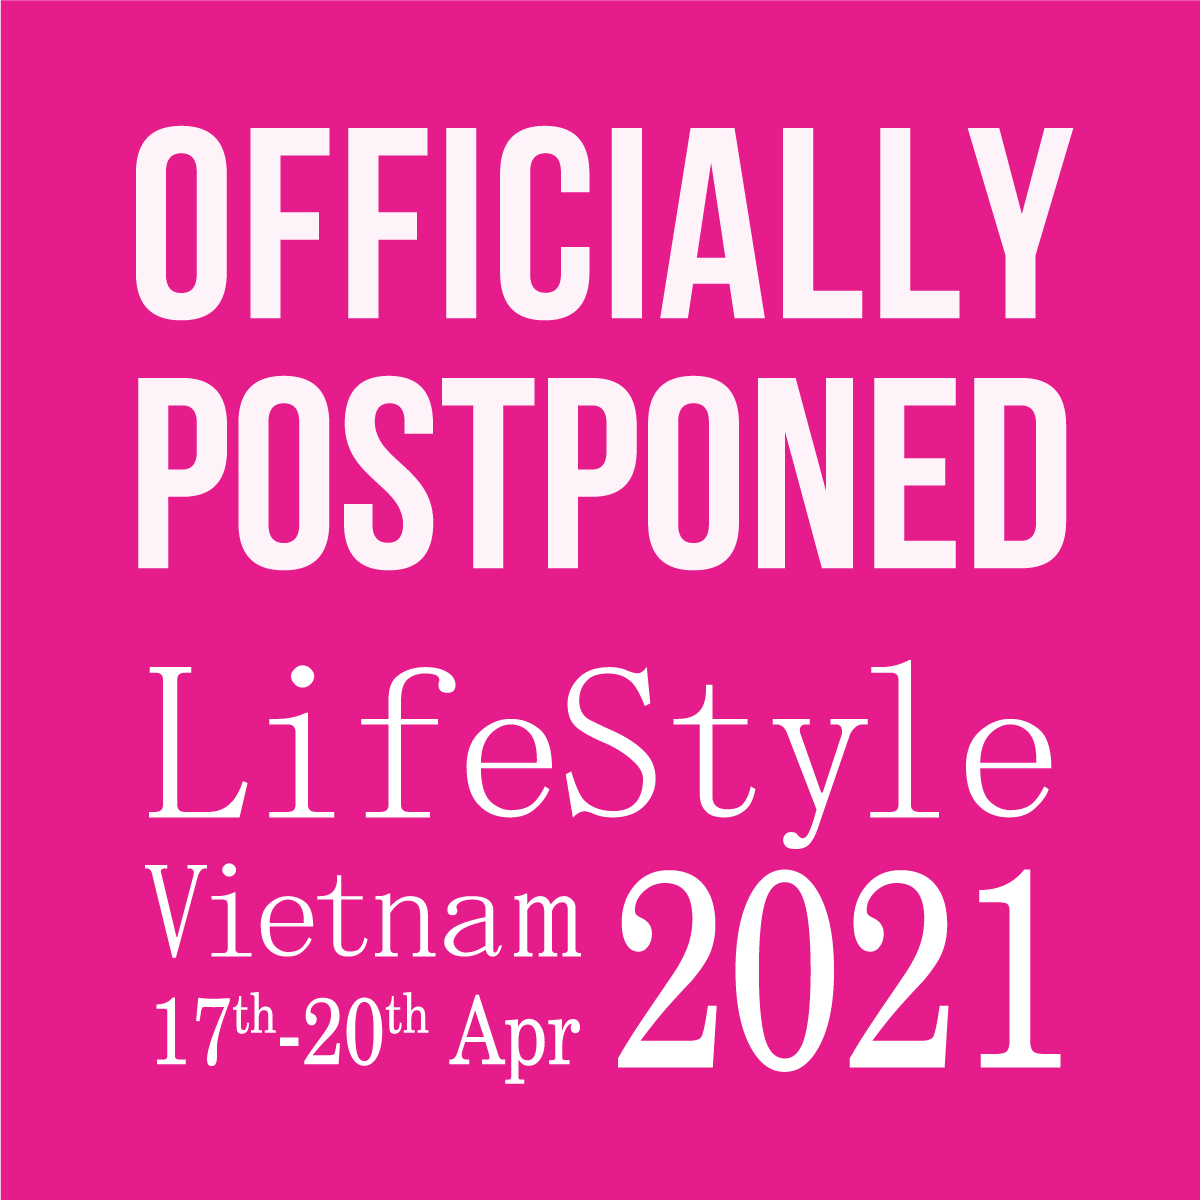 OFFICIAL ANNOUNCEMENT - Rescheduling of Lifestyle Vietnam 2020